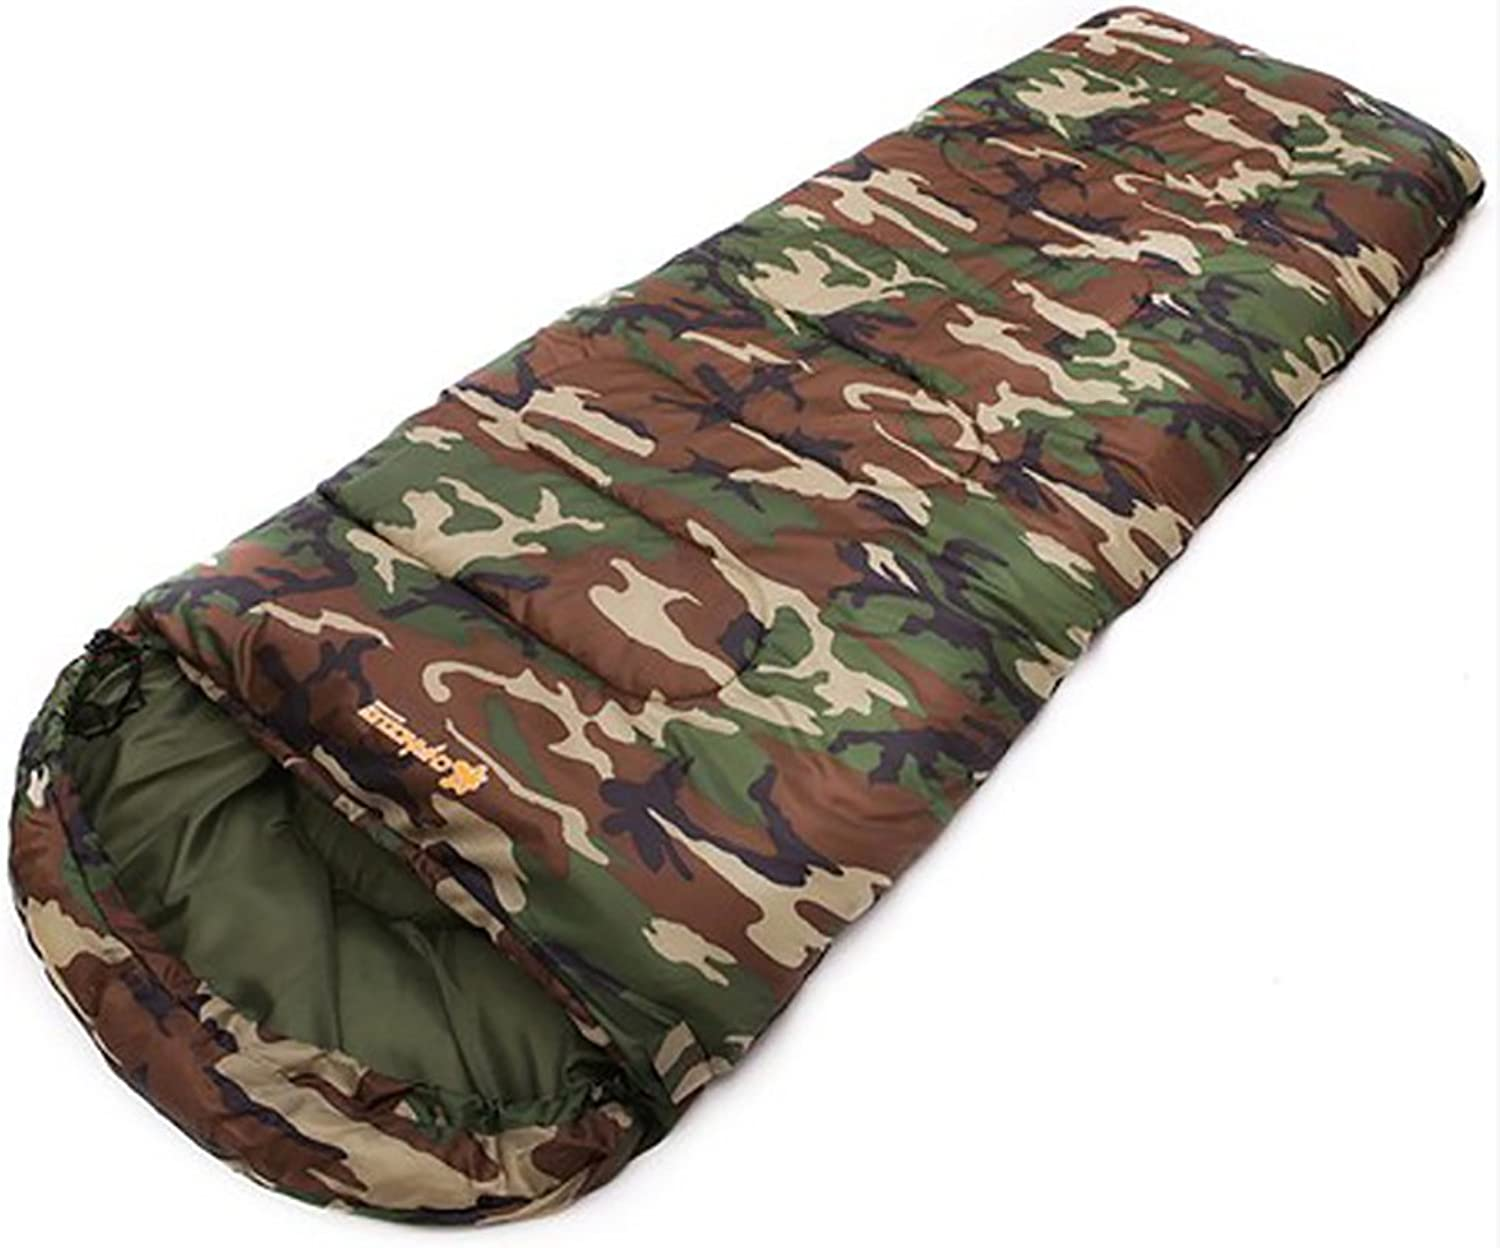 ChezMax Outdoor Lightweight Portable Sleeping Bag Camping Sleeping Bag with Carrying Bag Envelope Sleeping Bag for Travel ,Hiking, Camping